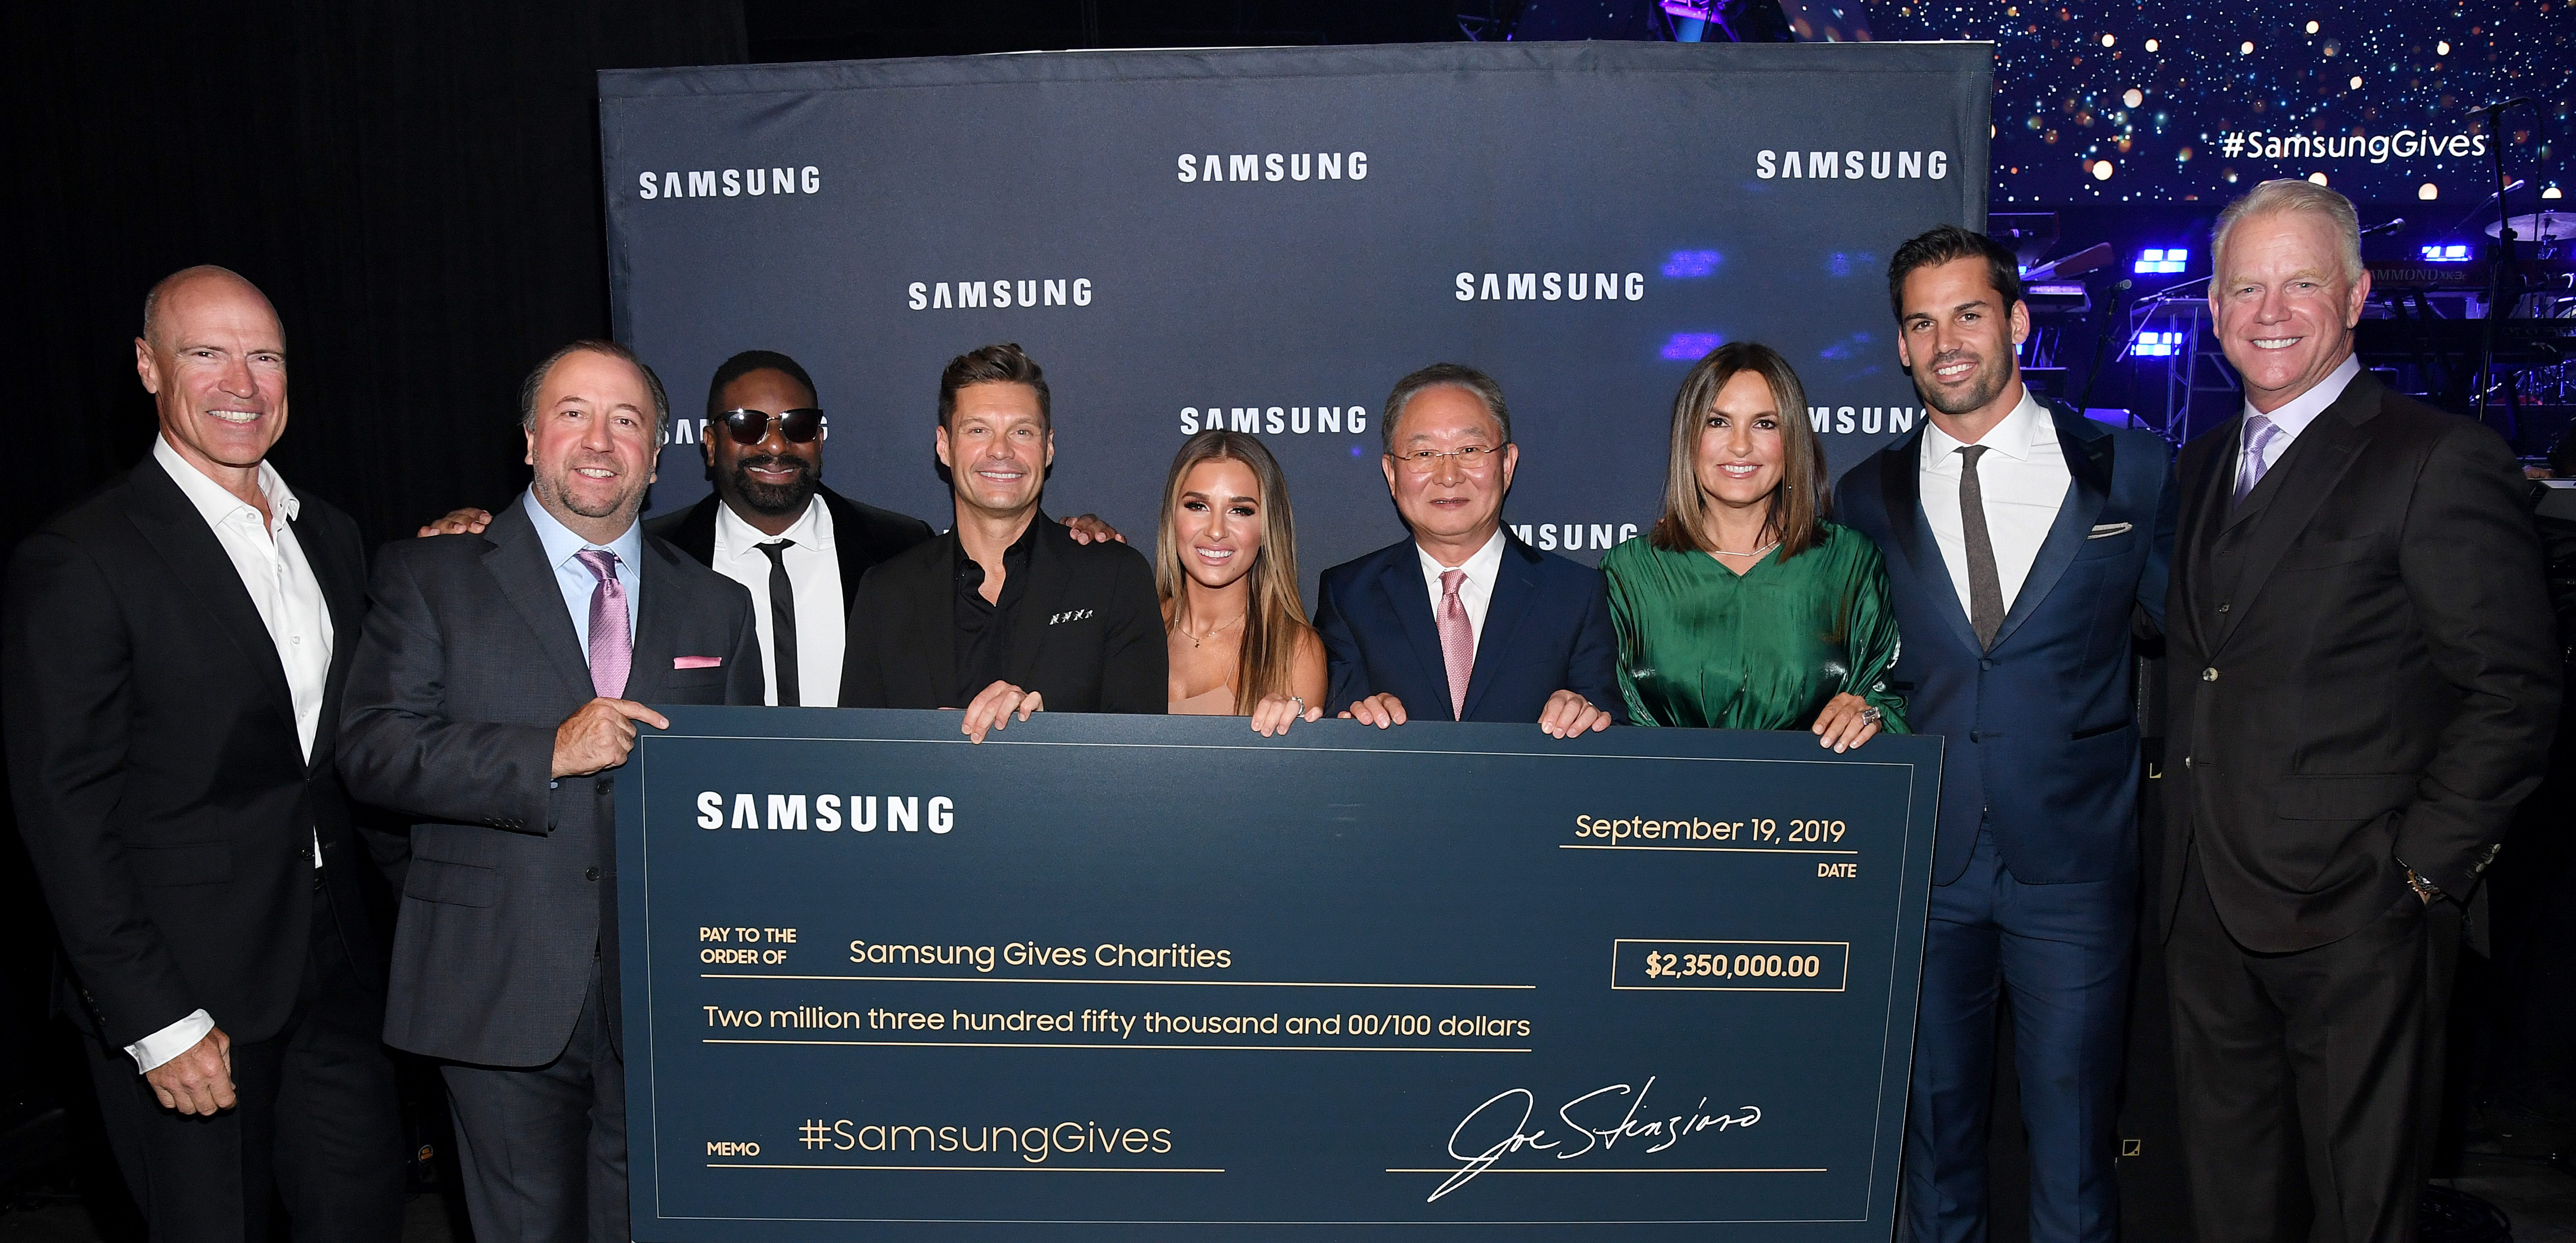 NEW YORK, NEW YORK - SEPTEMBER 19: <> attends Samsung Gives Annual Charity Gala at The Manhattan Center on September 19, 2019 in New York City. (Photo by Kevin Mazur/Getty Images for Samsung)